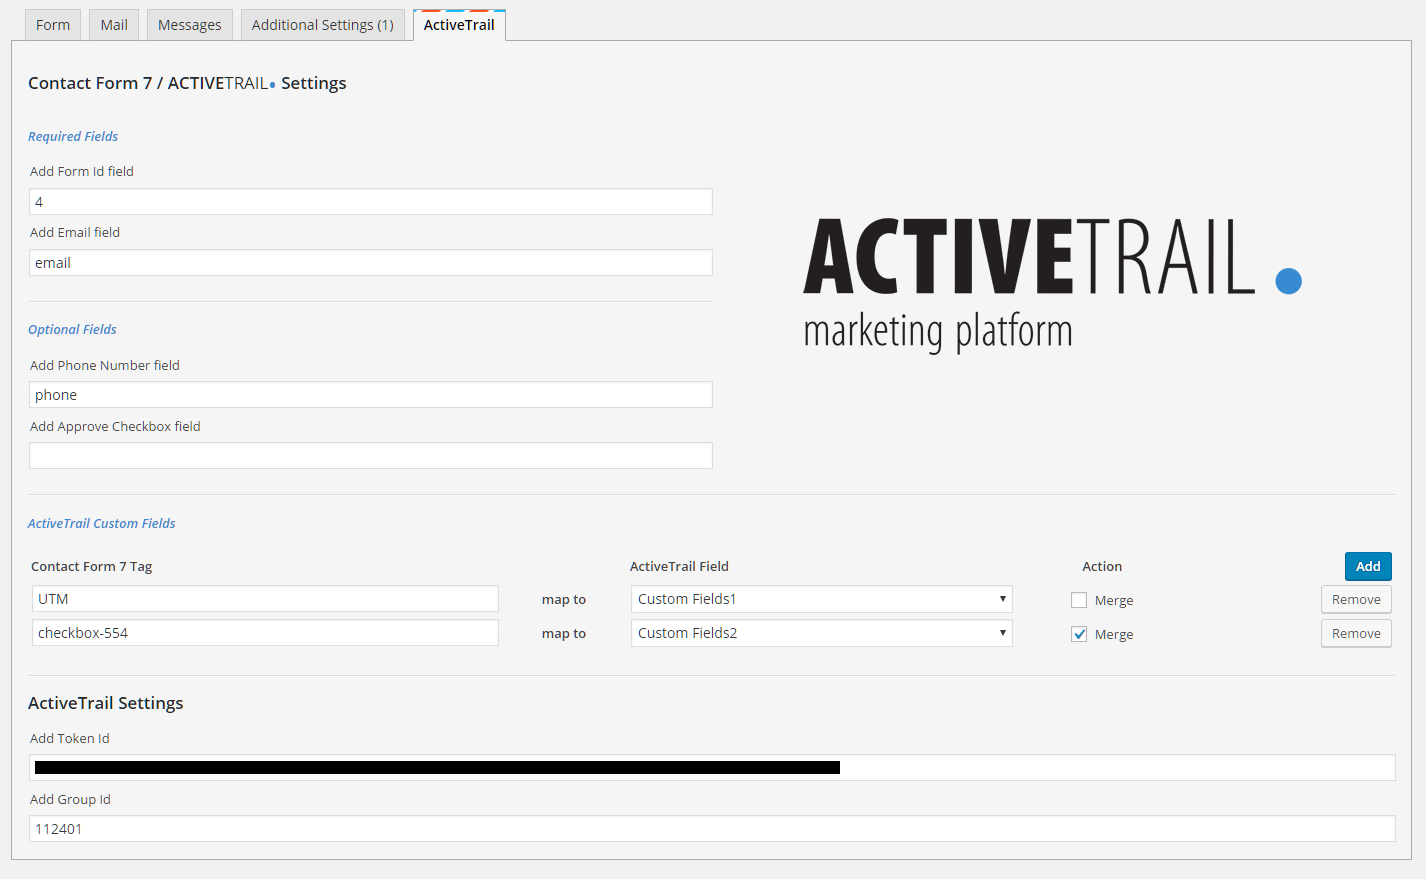 ActiveTrail – Contact Form 7